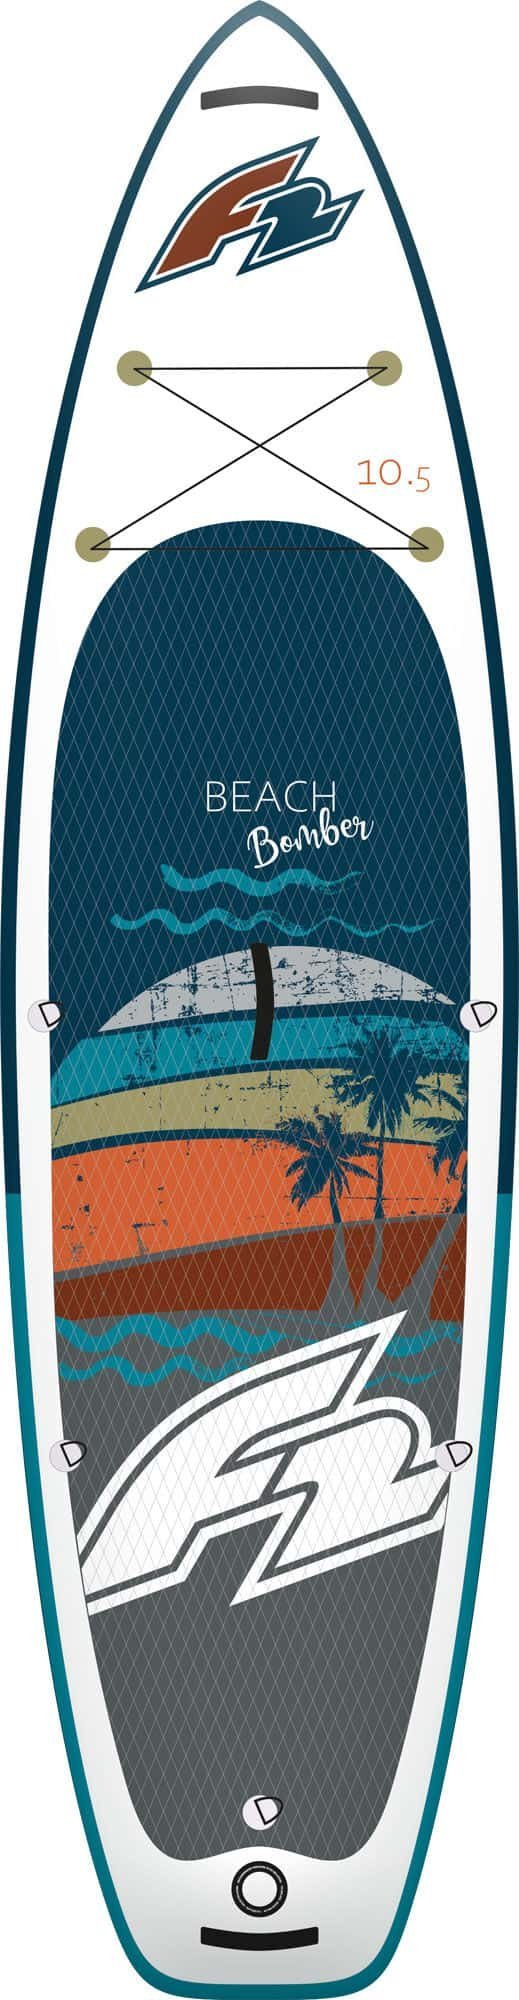 F2 Beach Bomber Stand Up Paddle Set